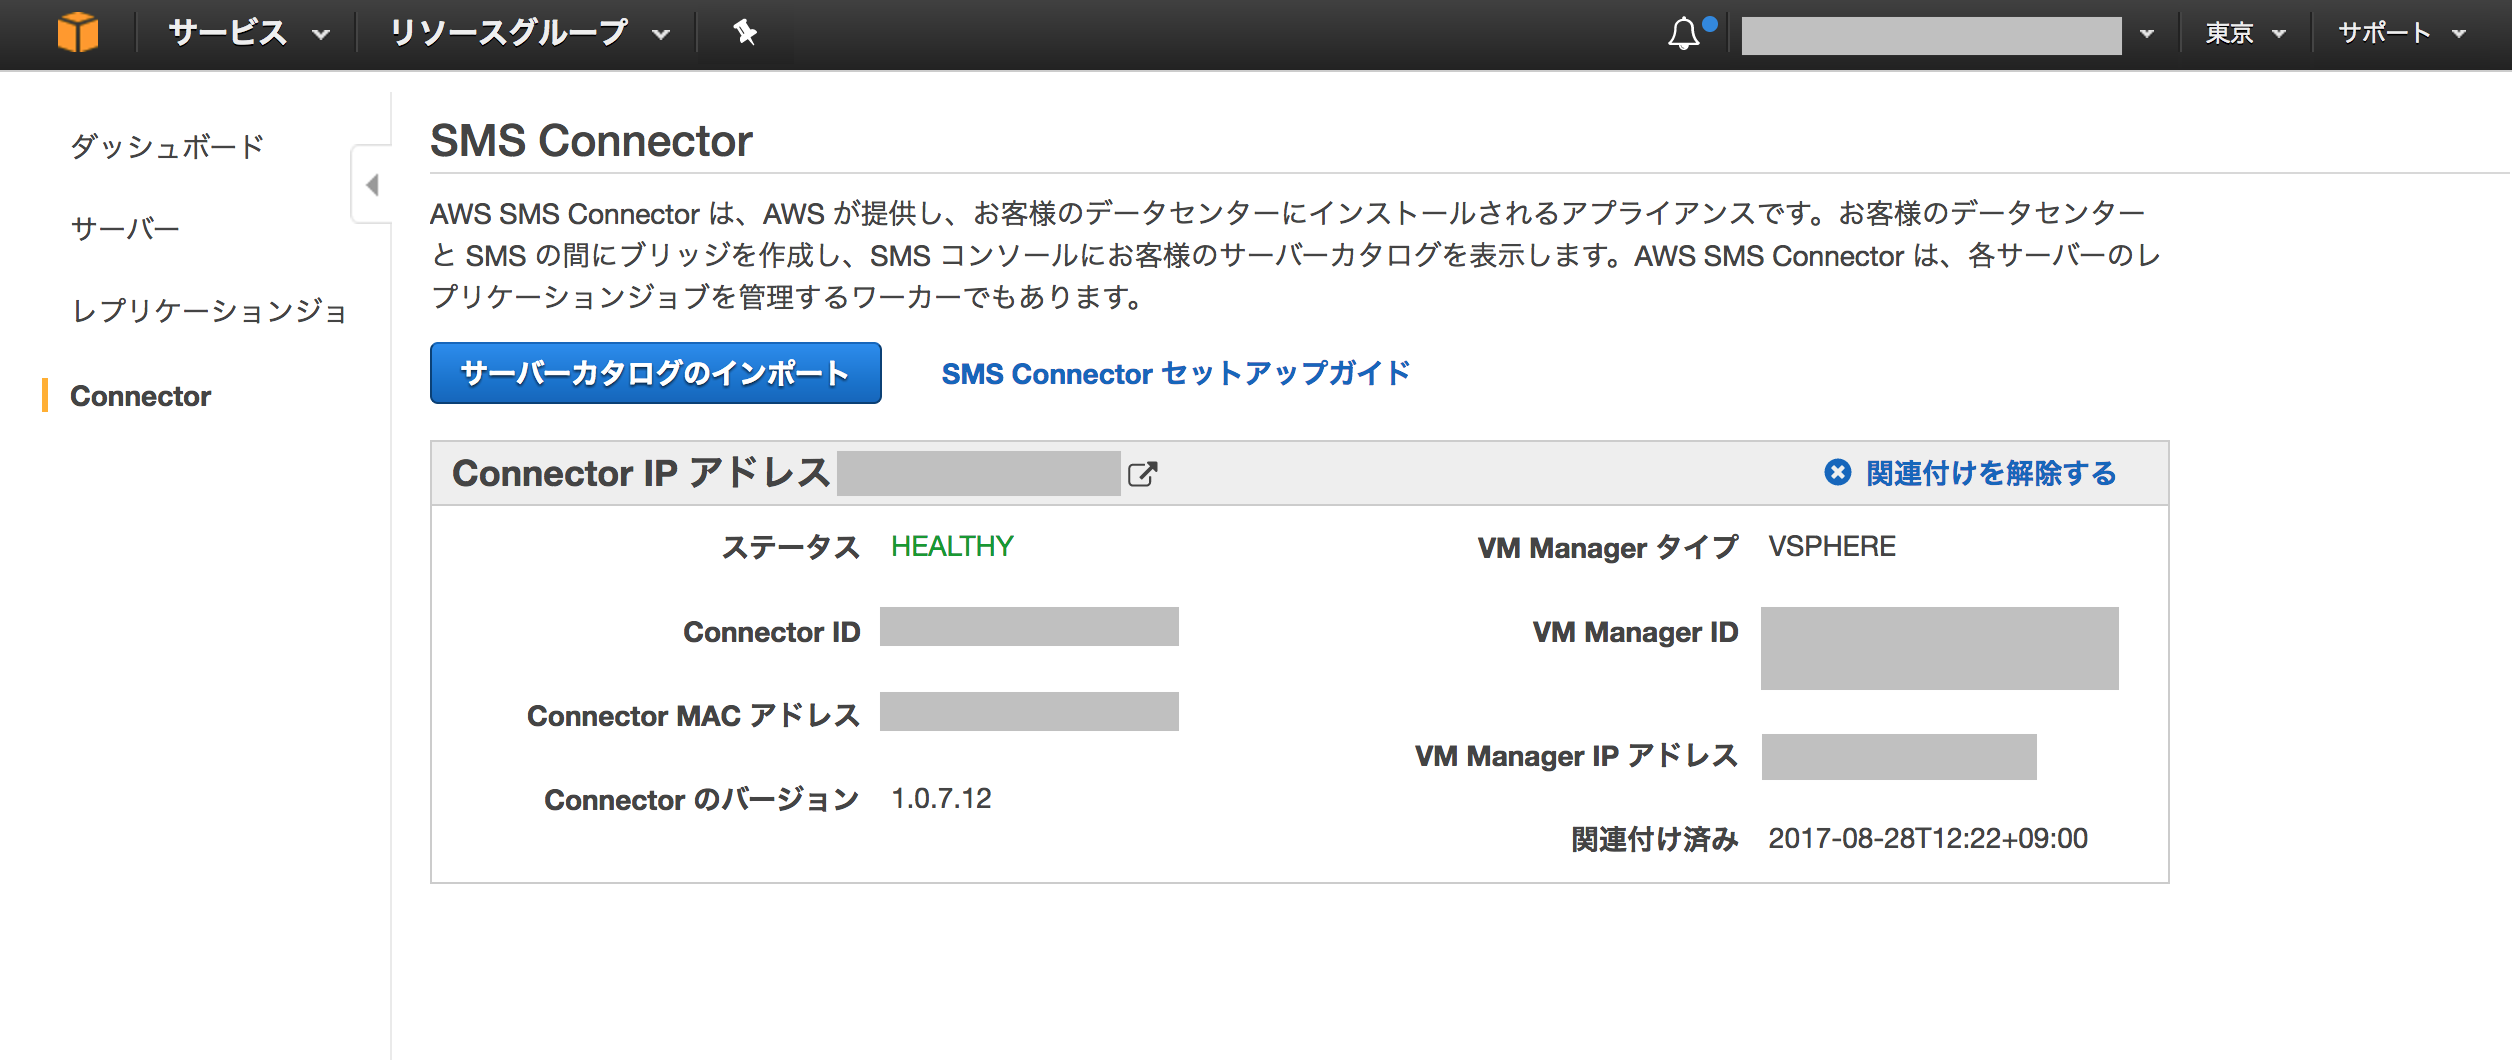 aws_sms01_edit.png